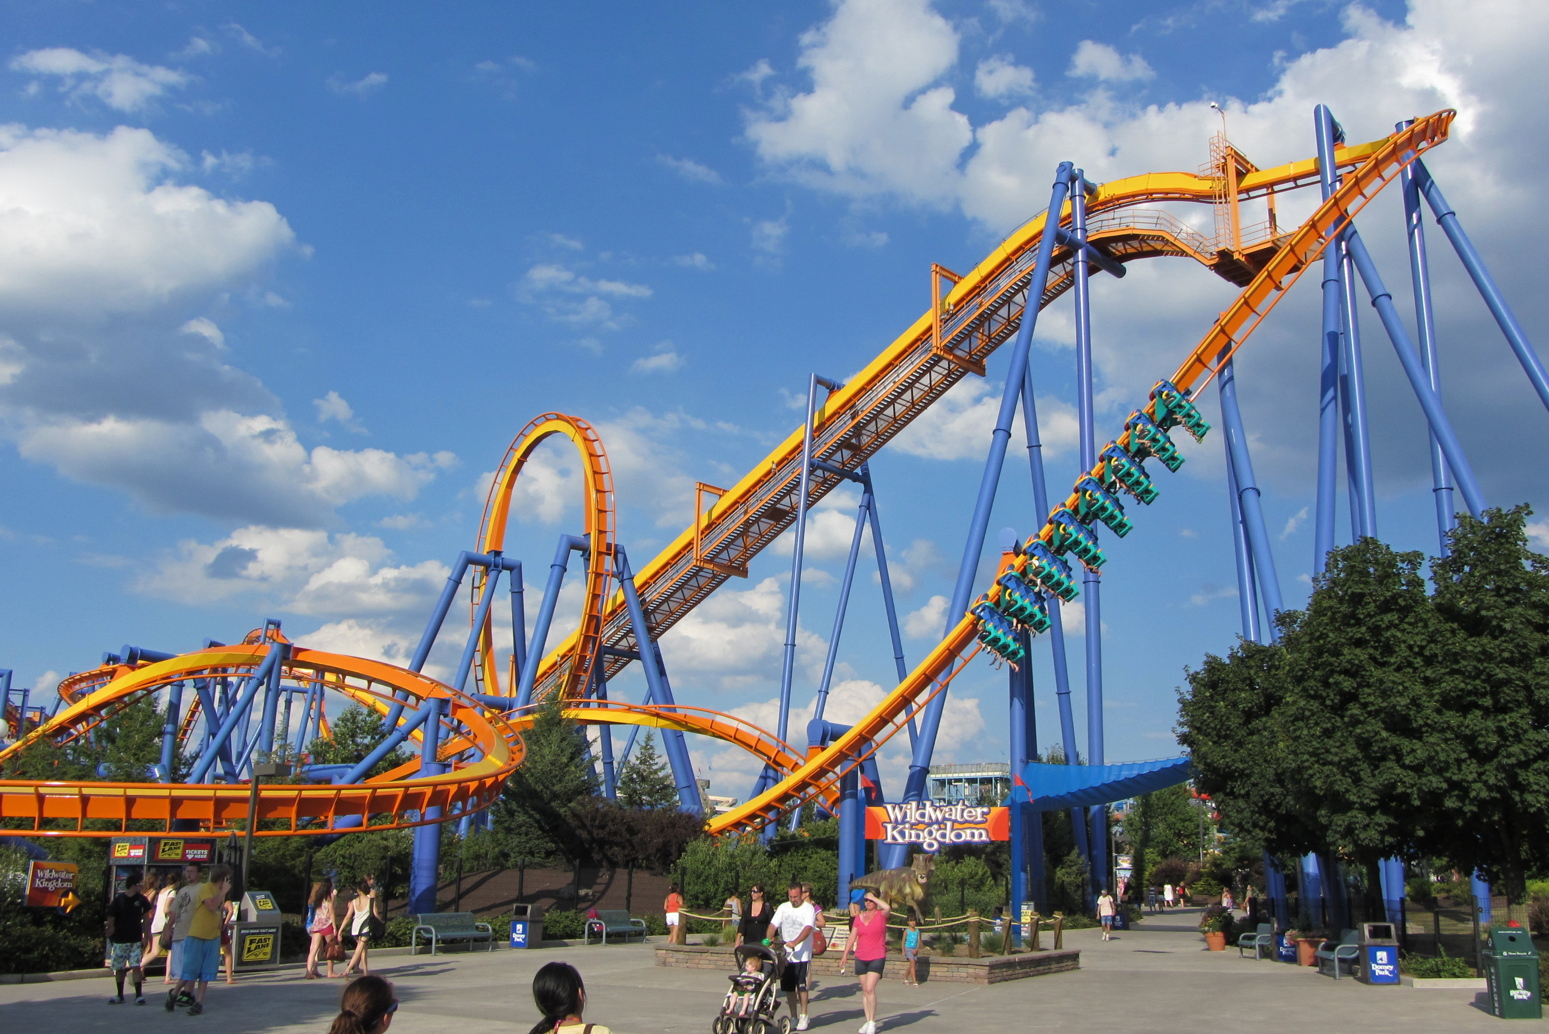 Top 10 Tips for enjoying Dorney Park and have the best experience 06/08/17 | Entertainment, Lifestyle, PR-Media Events, Travel Since both of my kids did very well in school this year, we decided to reward them for all of their hard work.